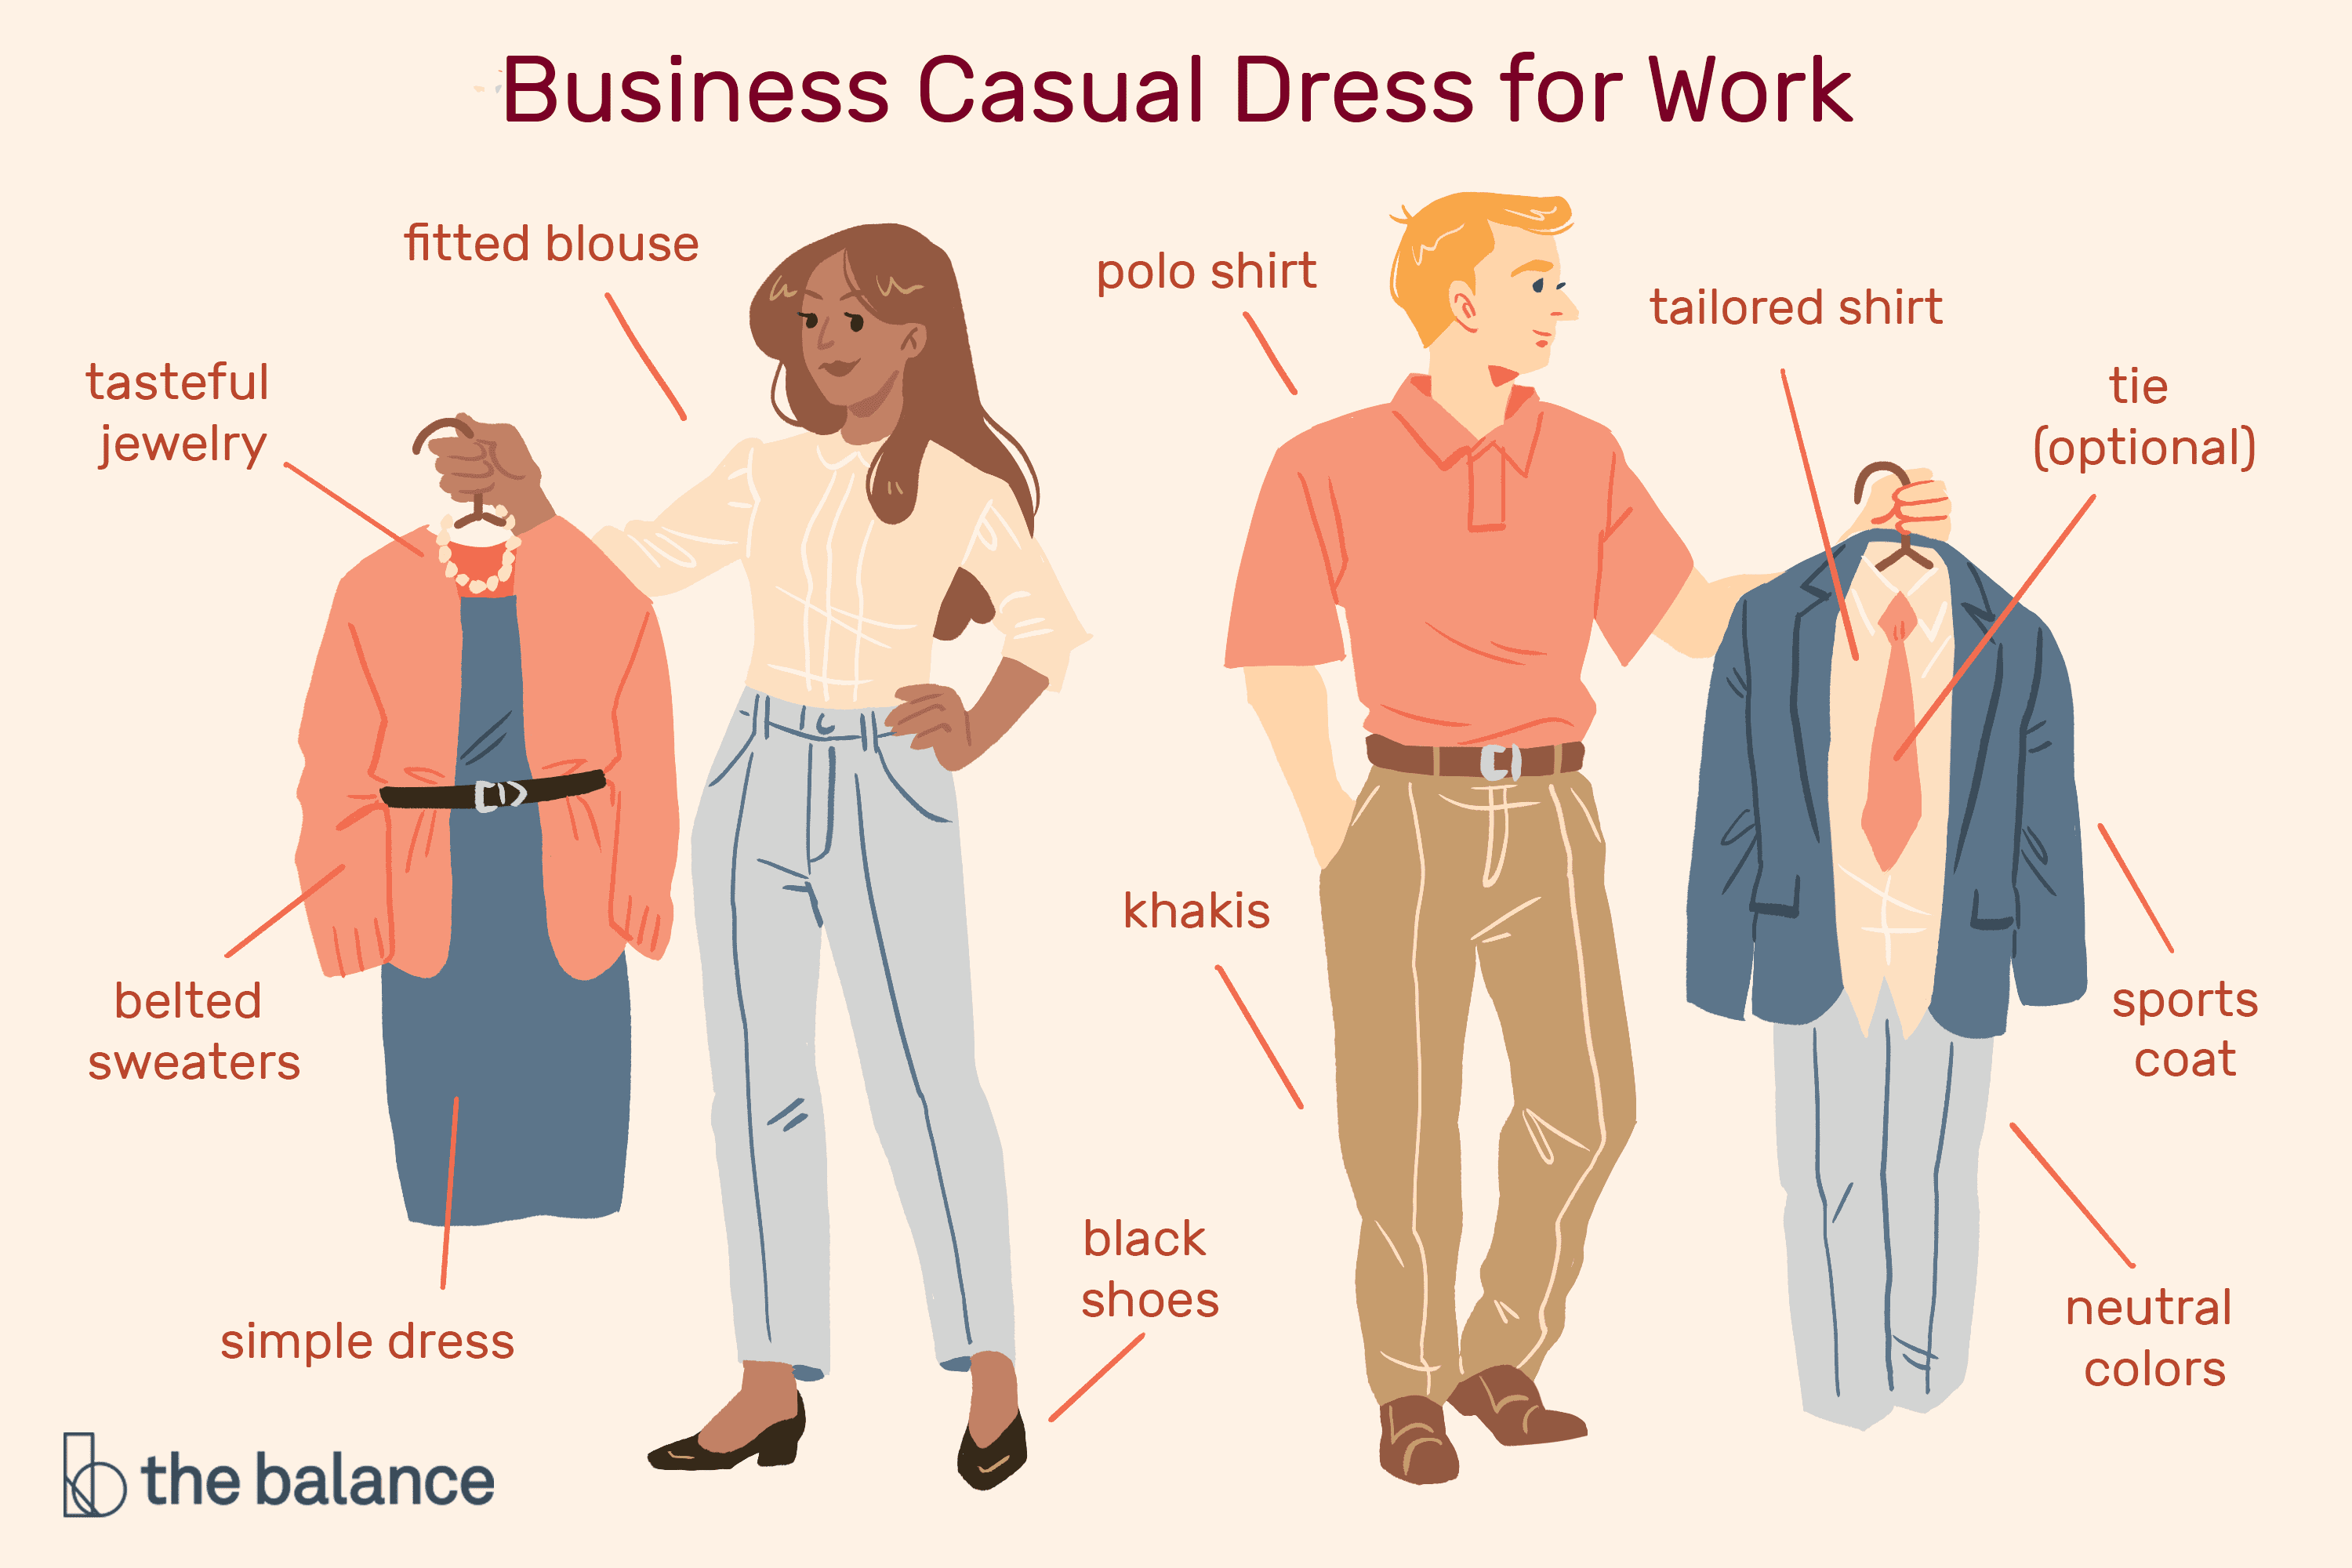 07d0f8a498 Images of Business Casual Dress for the Workplace